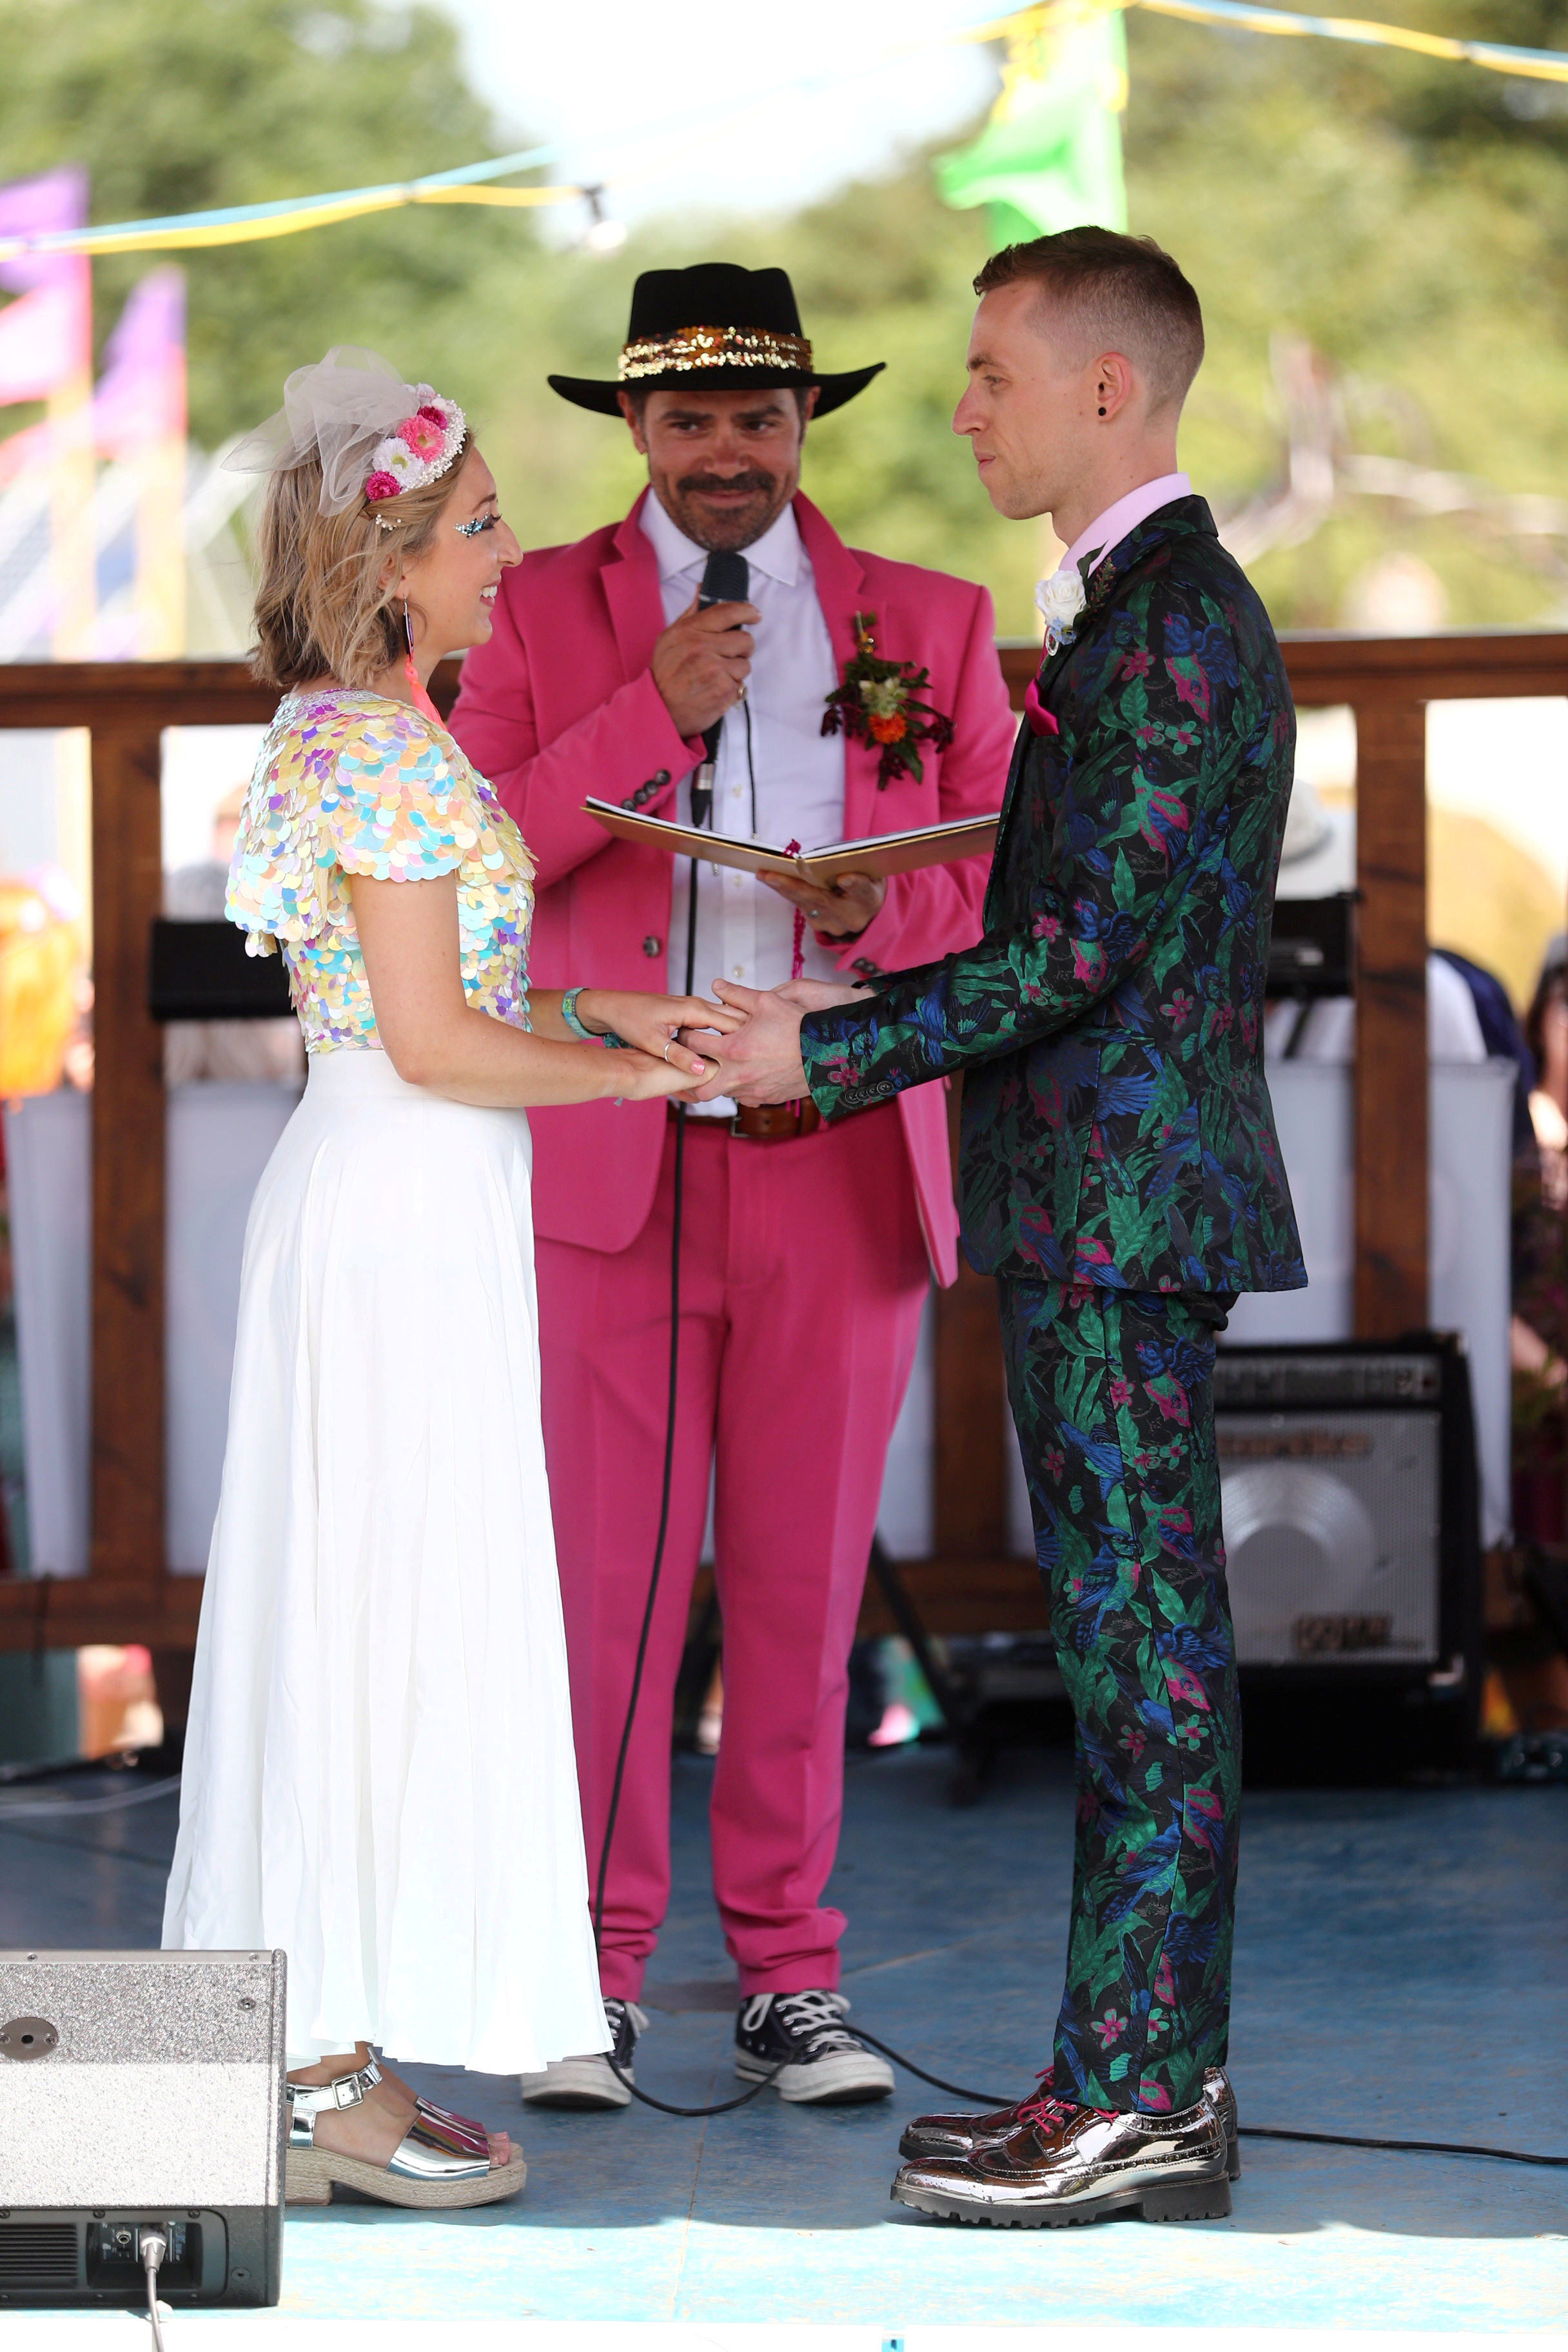 The pair wed in a colourful ceremony at Glasto. Credit: SWNS